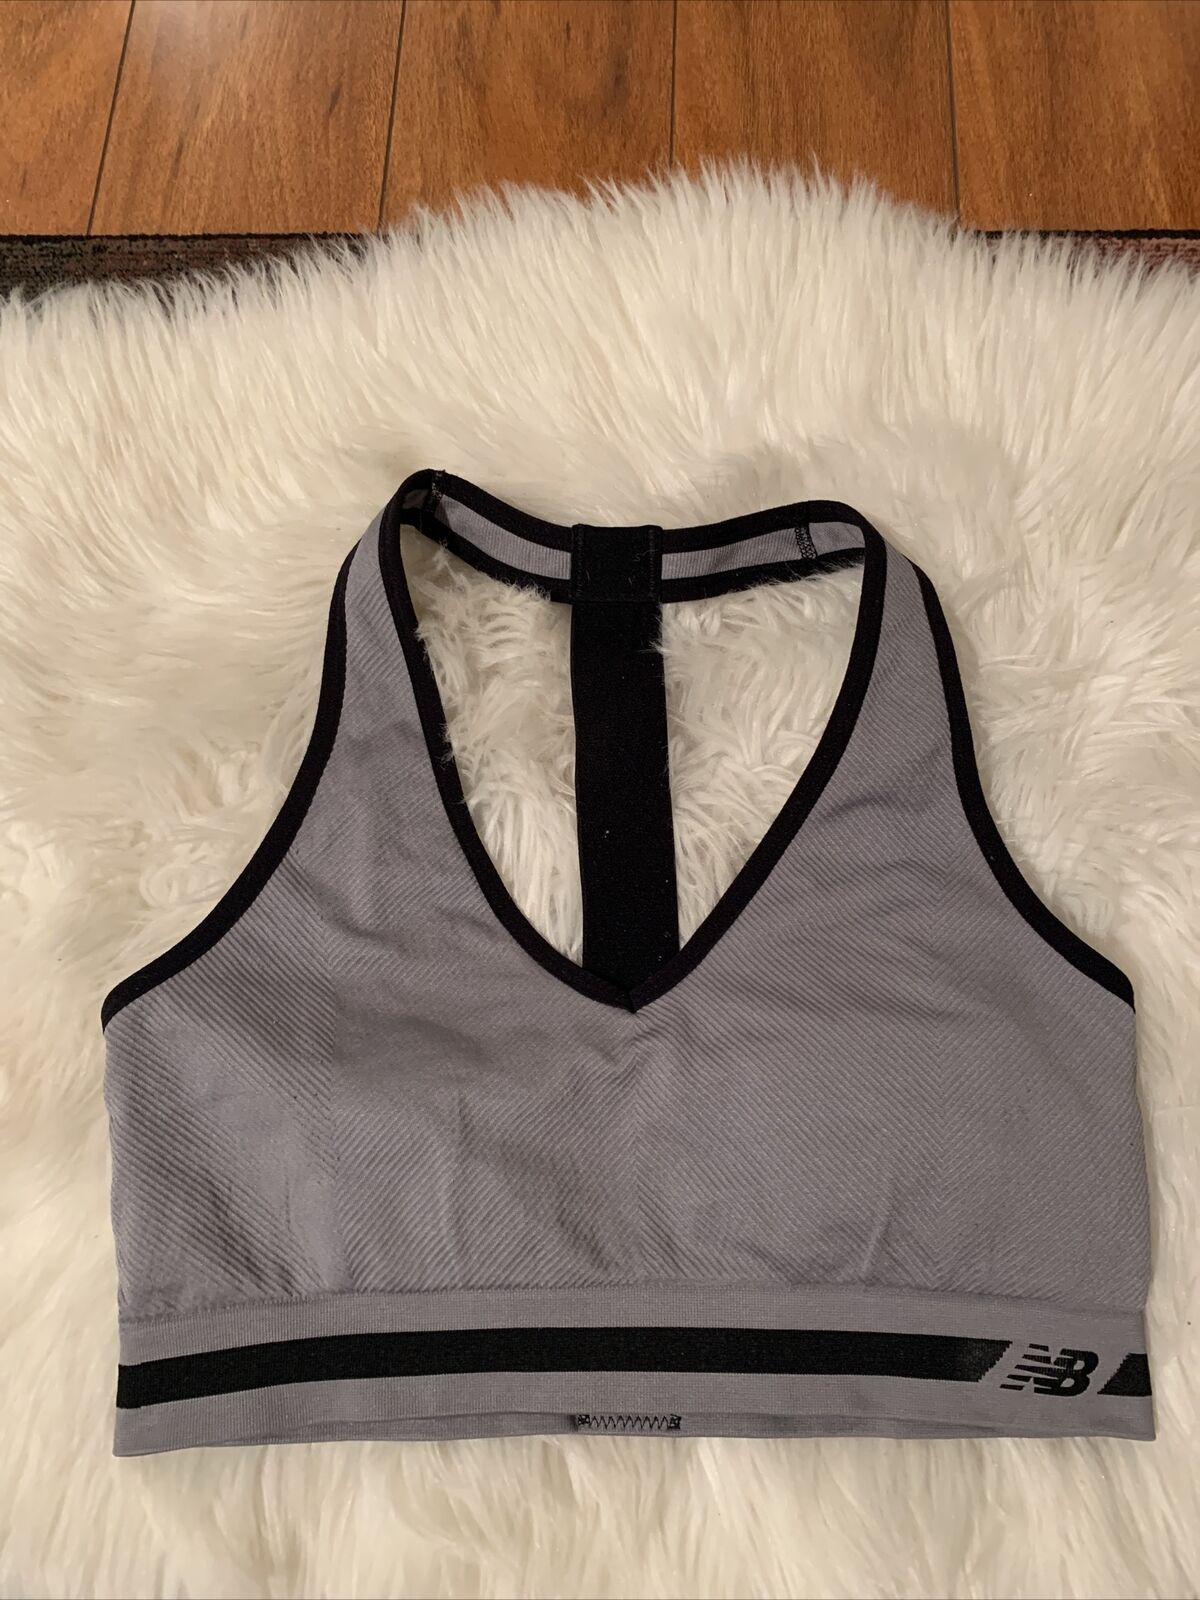 new balance XL gray sports bra racerback lightly lined great compression